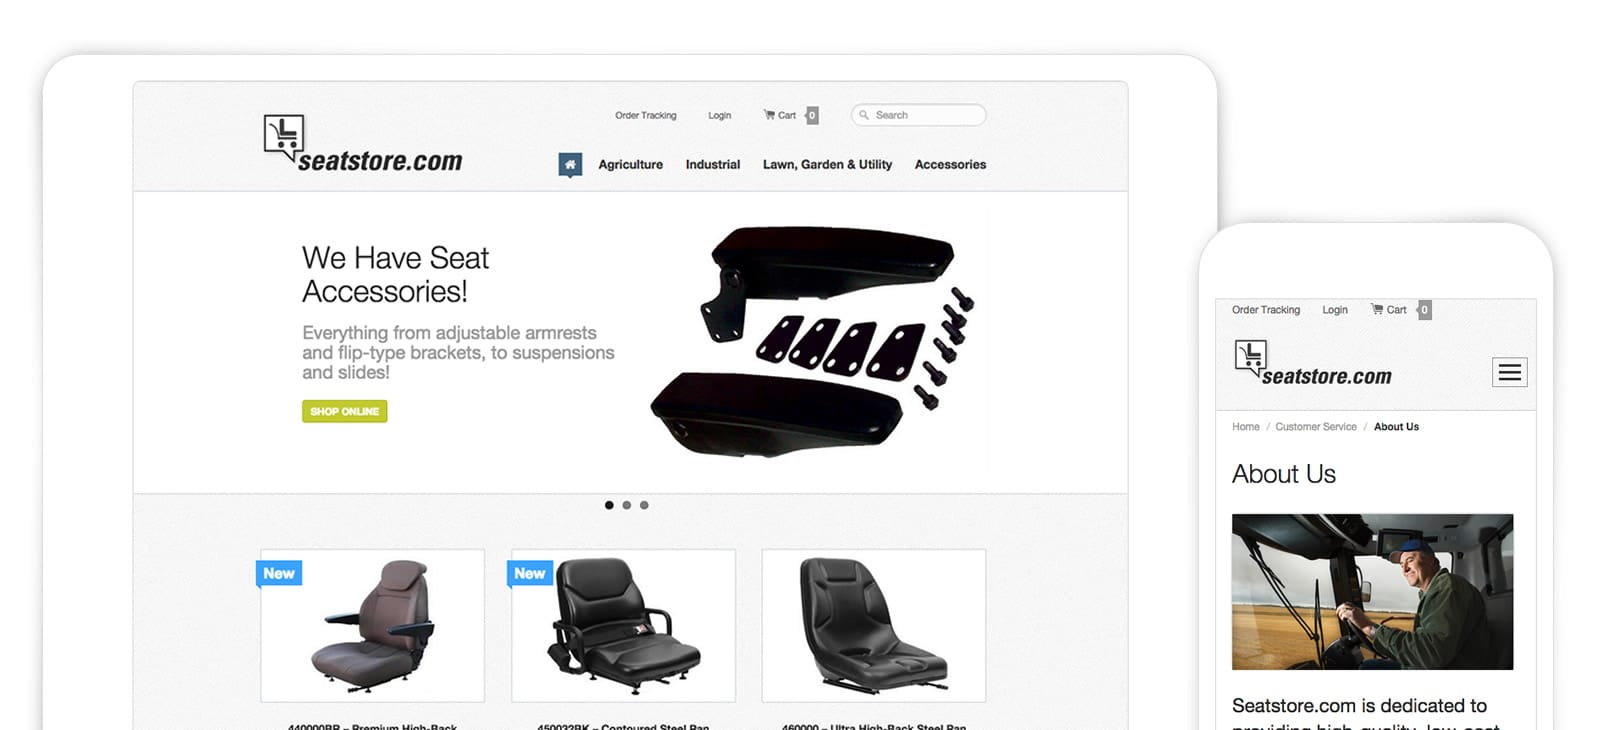 Seatstore Website Design